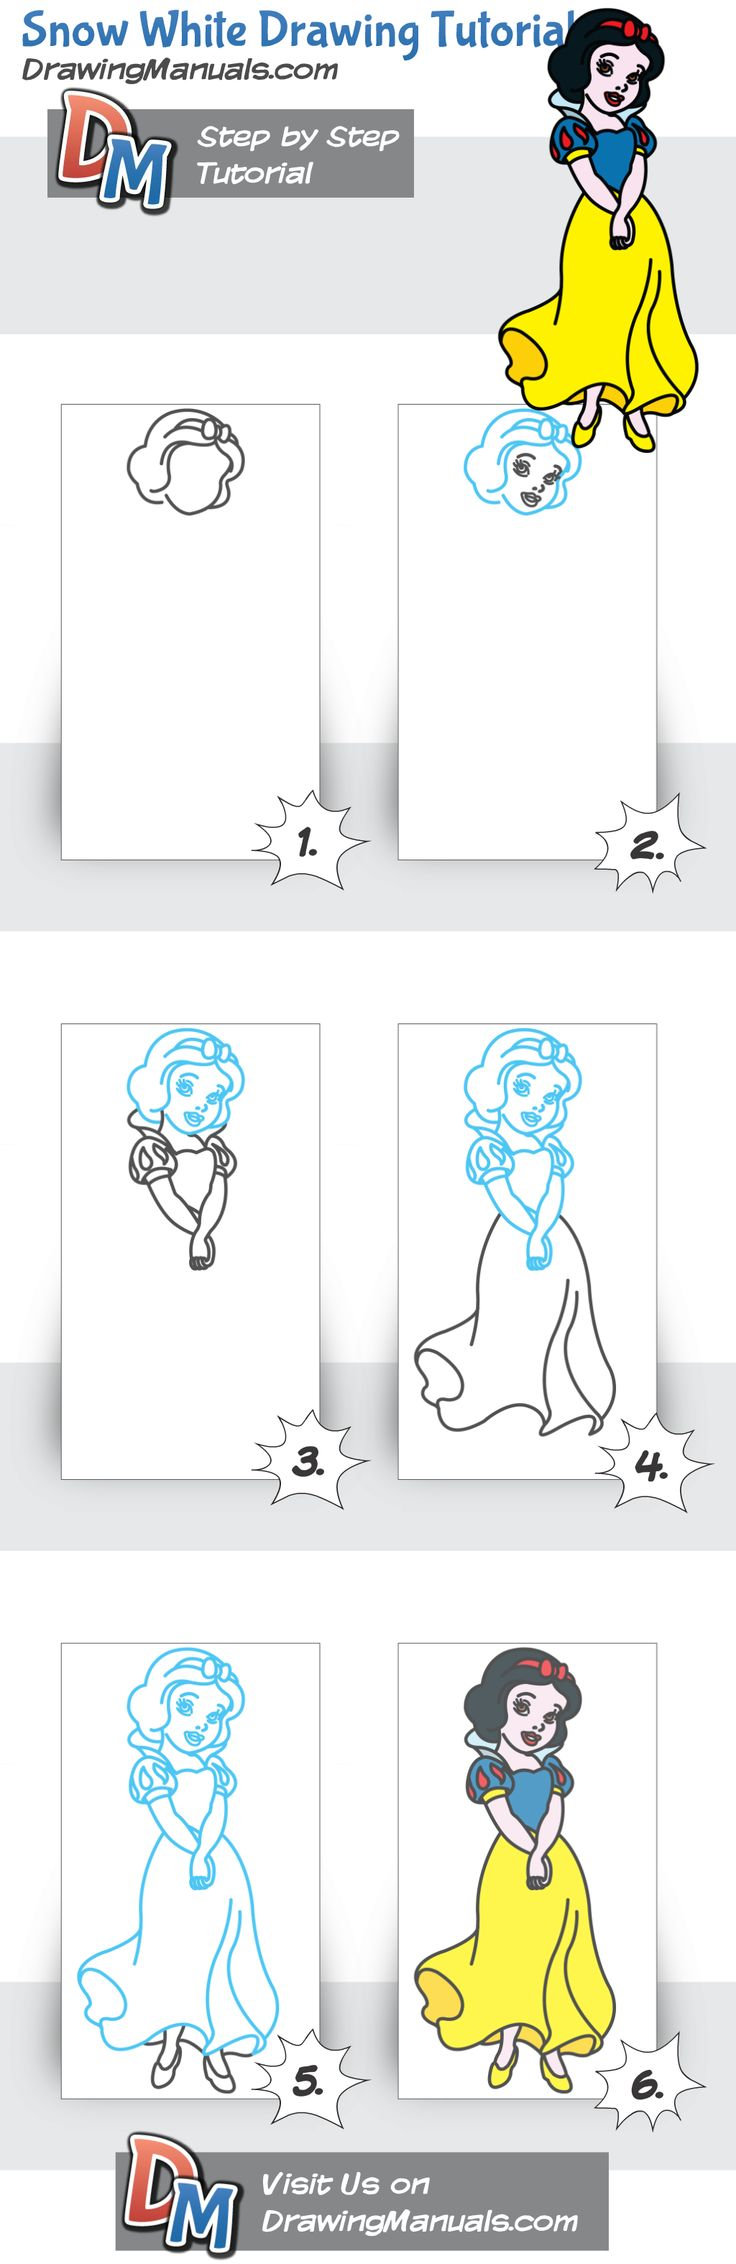 Snow White Drawing Tutorial http://goo.gl/1oR3SF